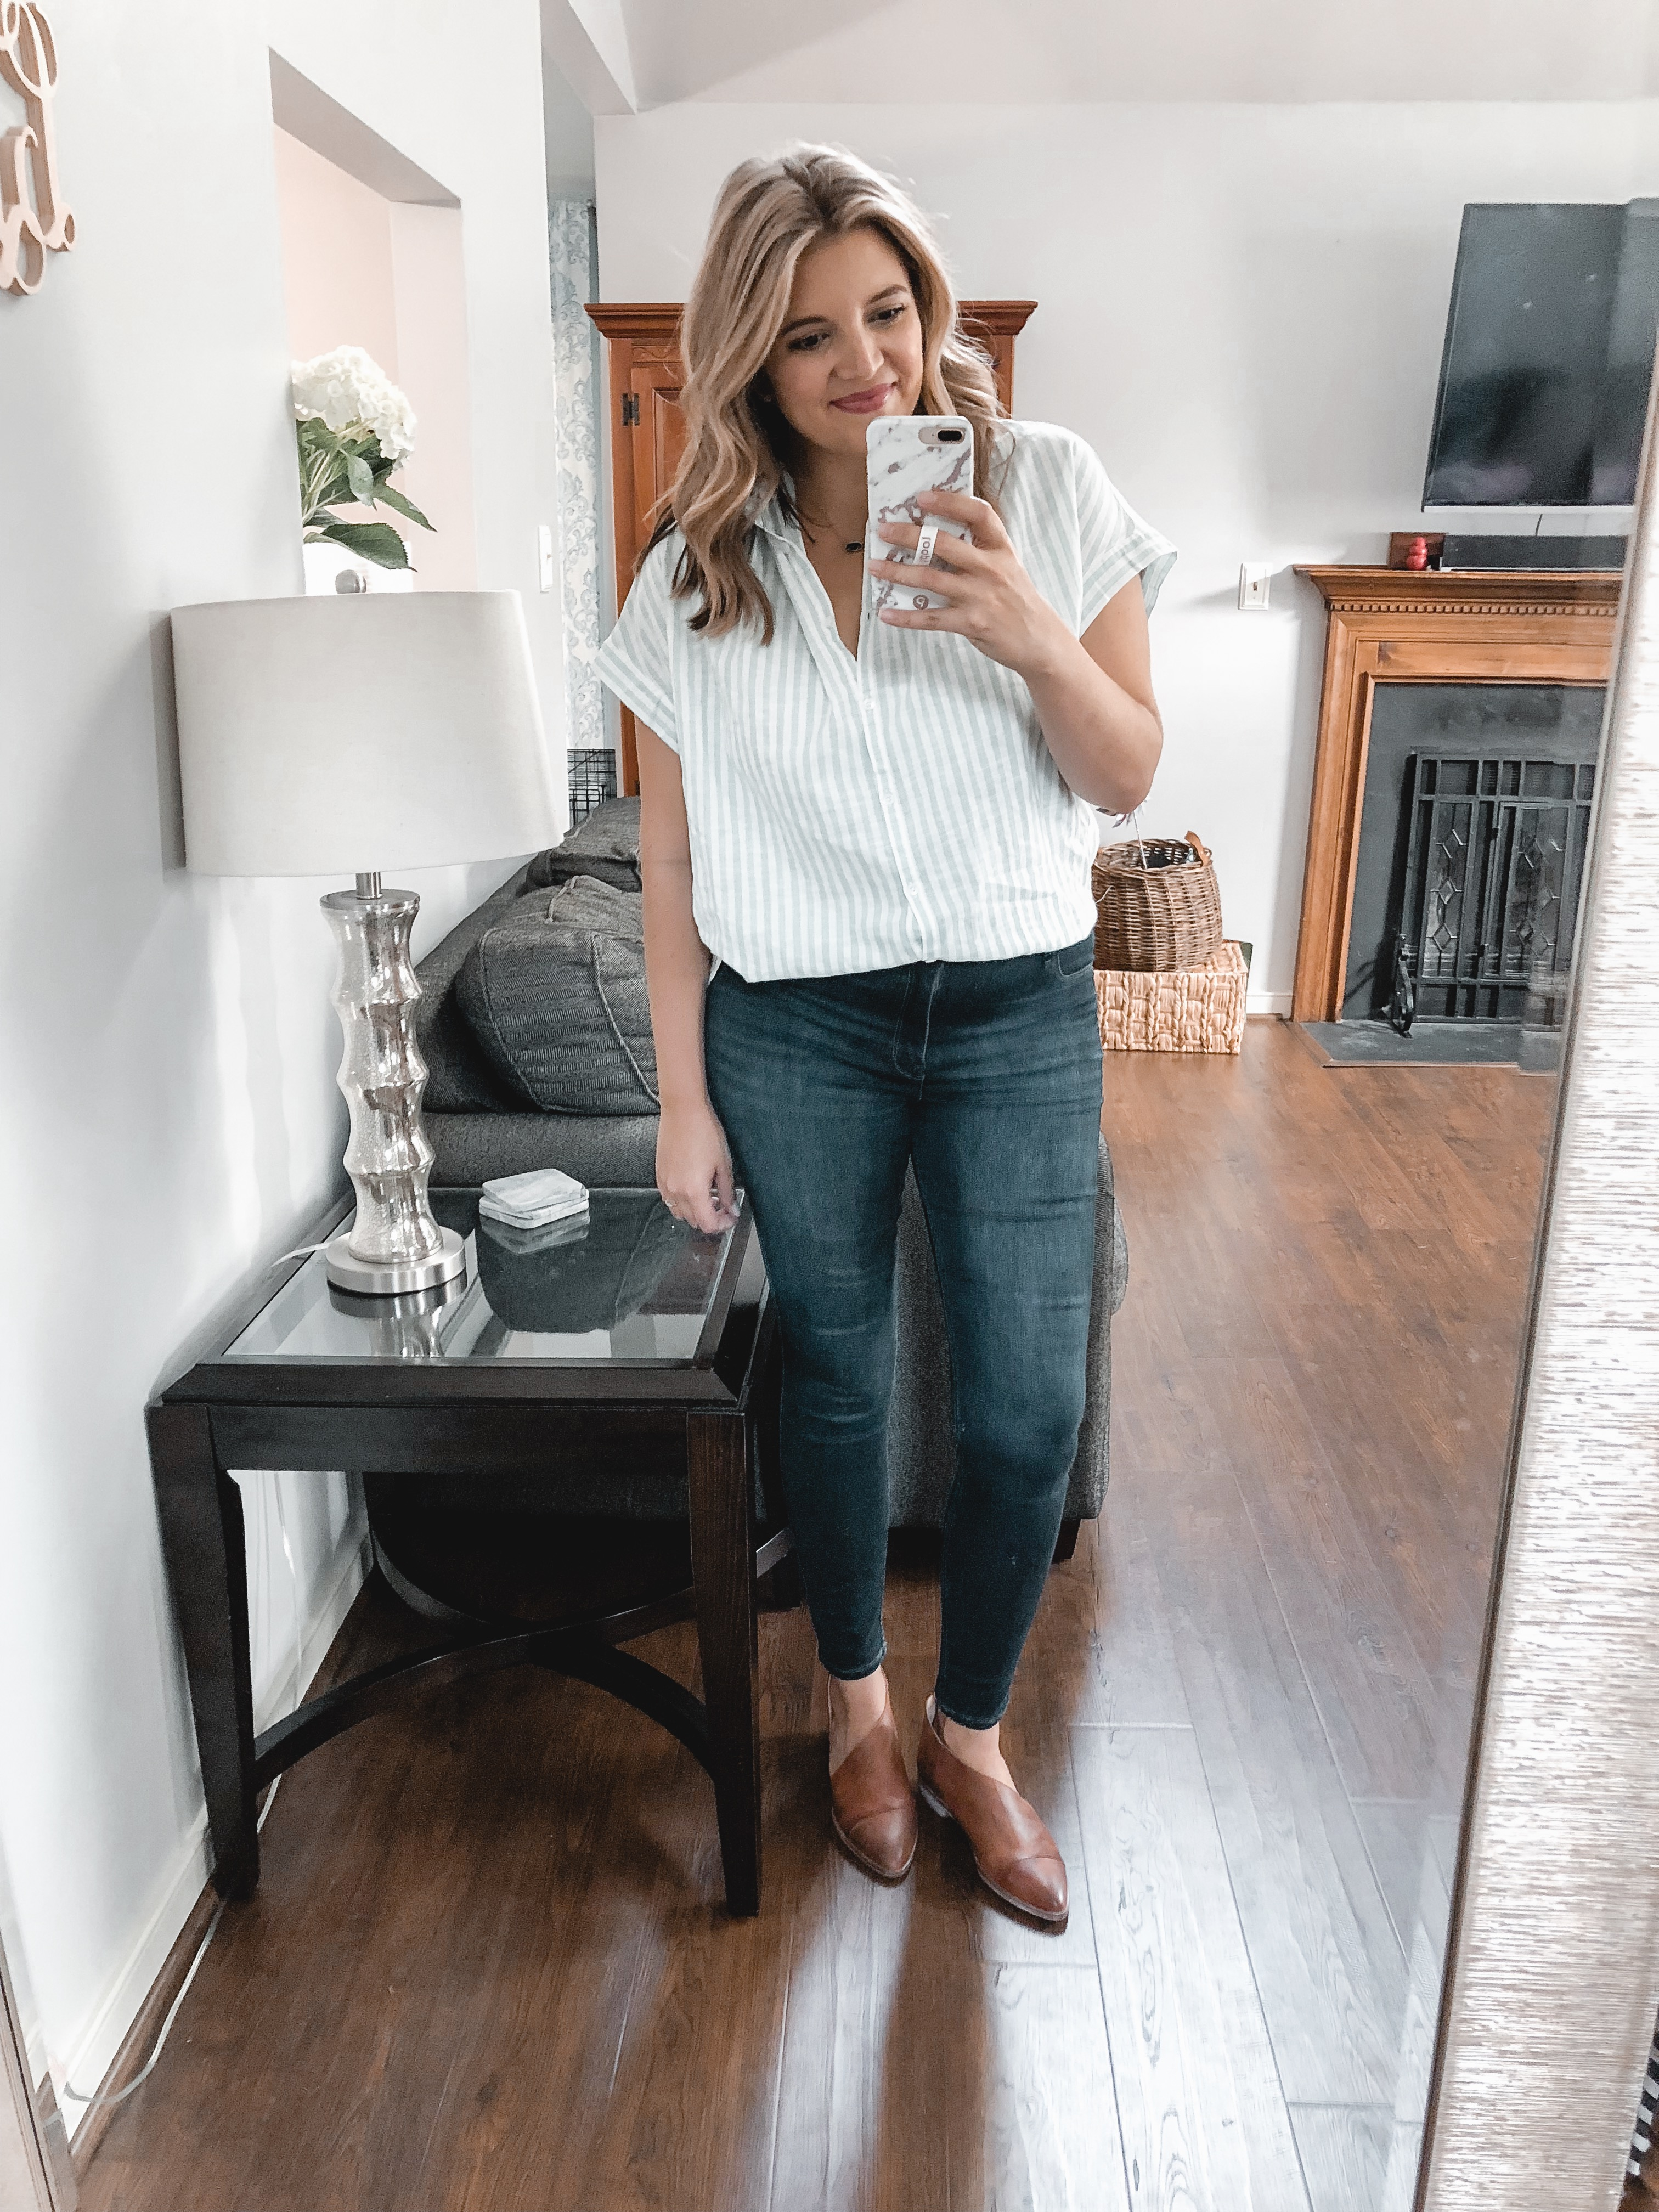 trunk club september review - nursing-friendly try-on session and reviews! bylaurenm.com